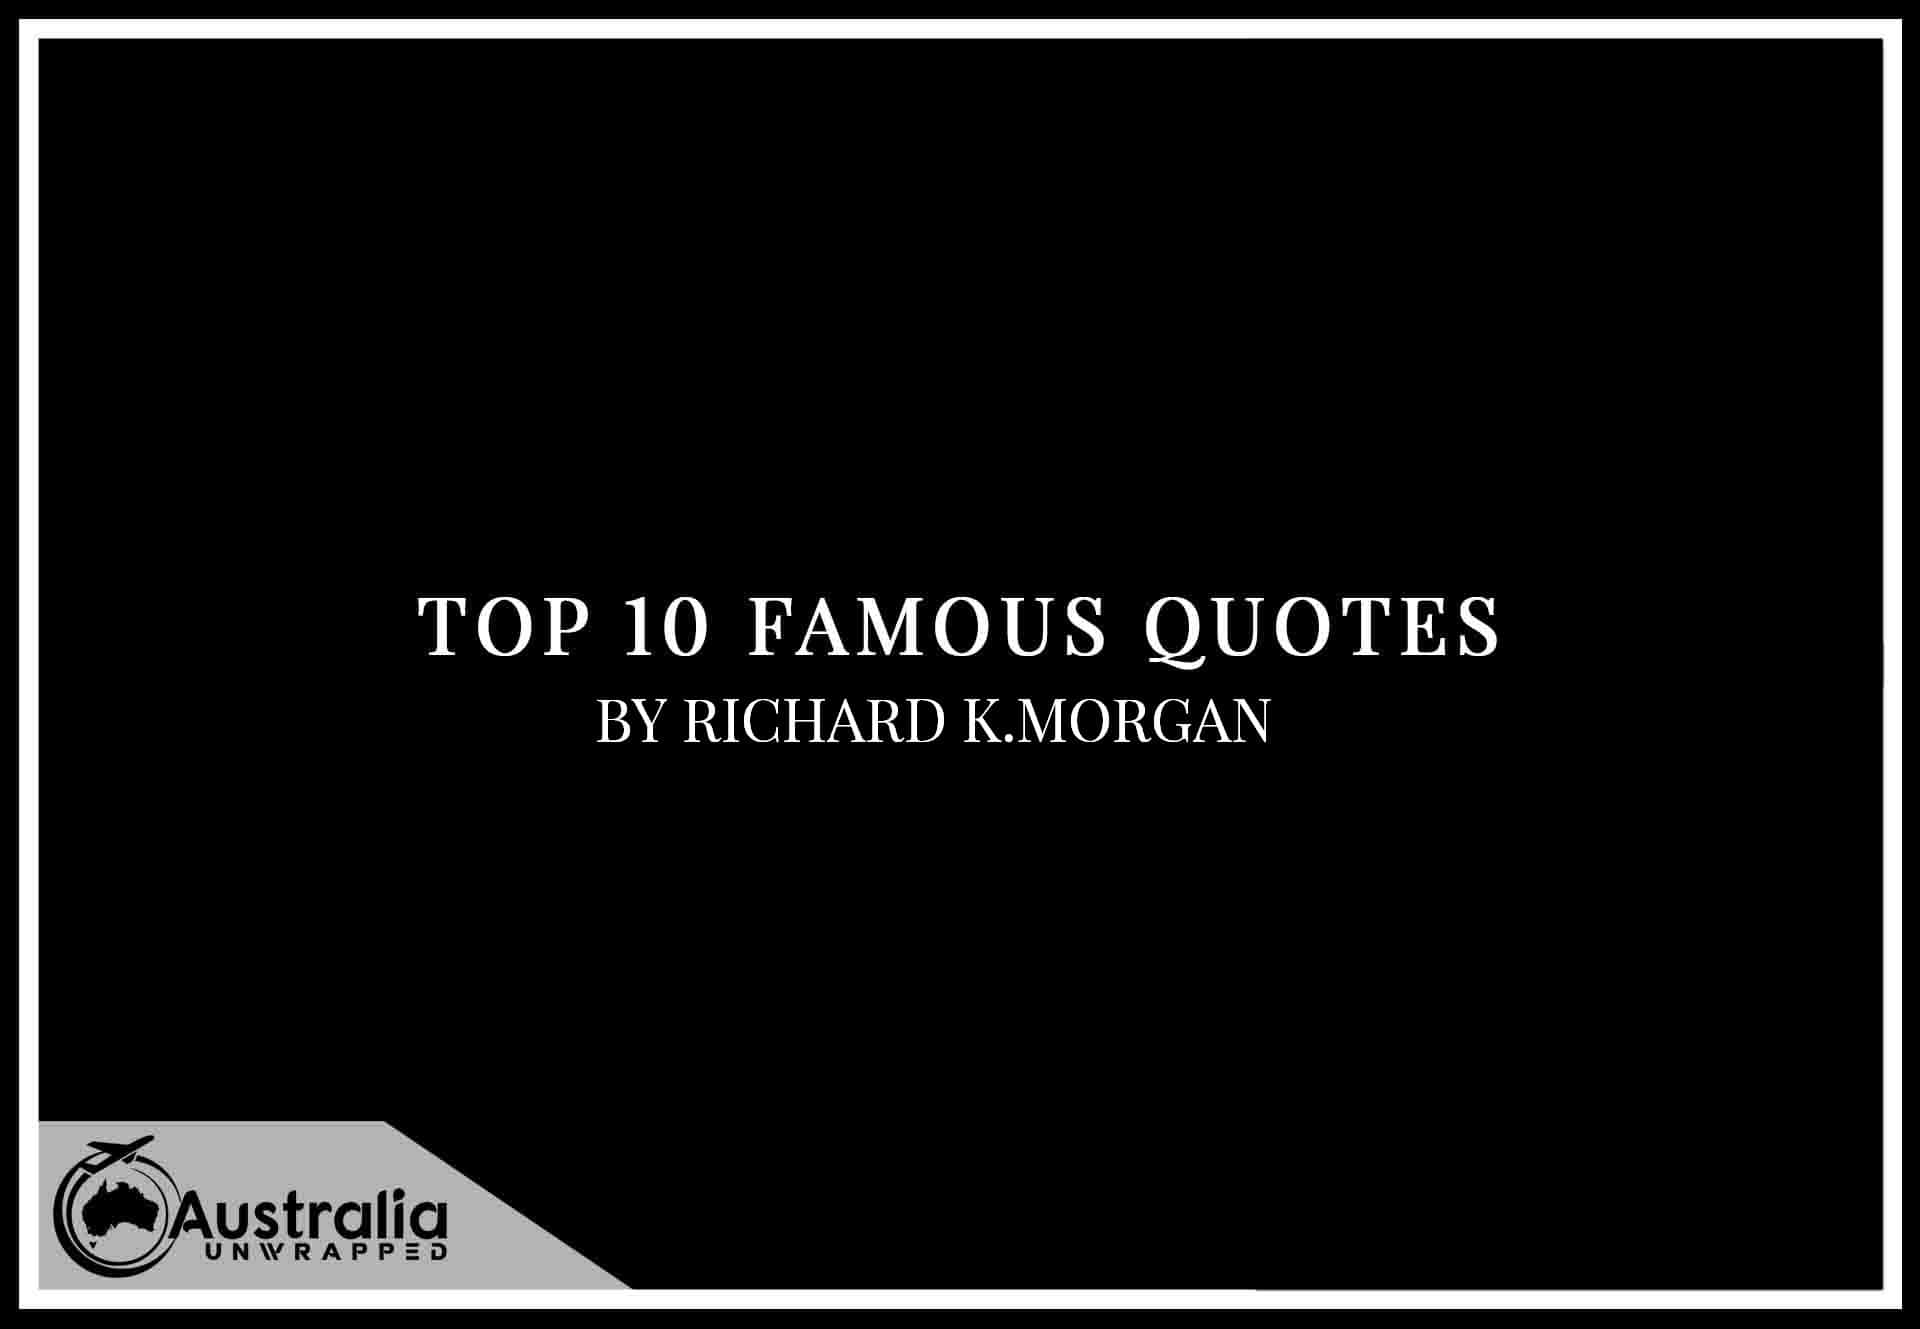 Richard K. Morgan's Top 10 Popular and Famous Quotes